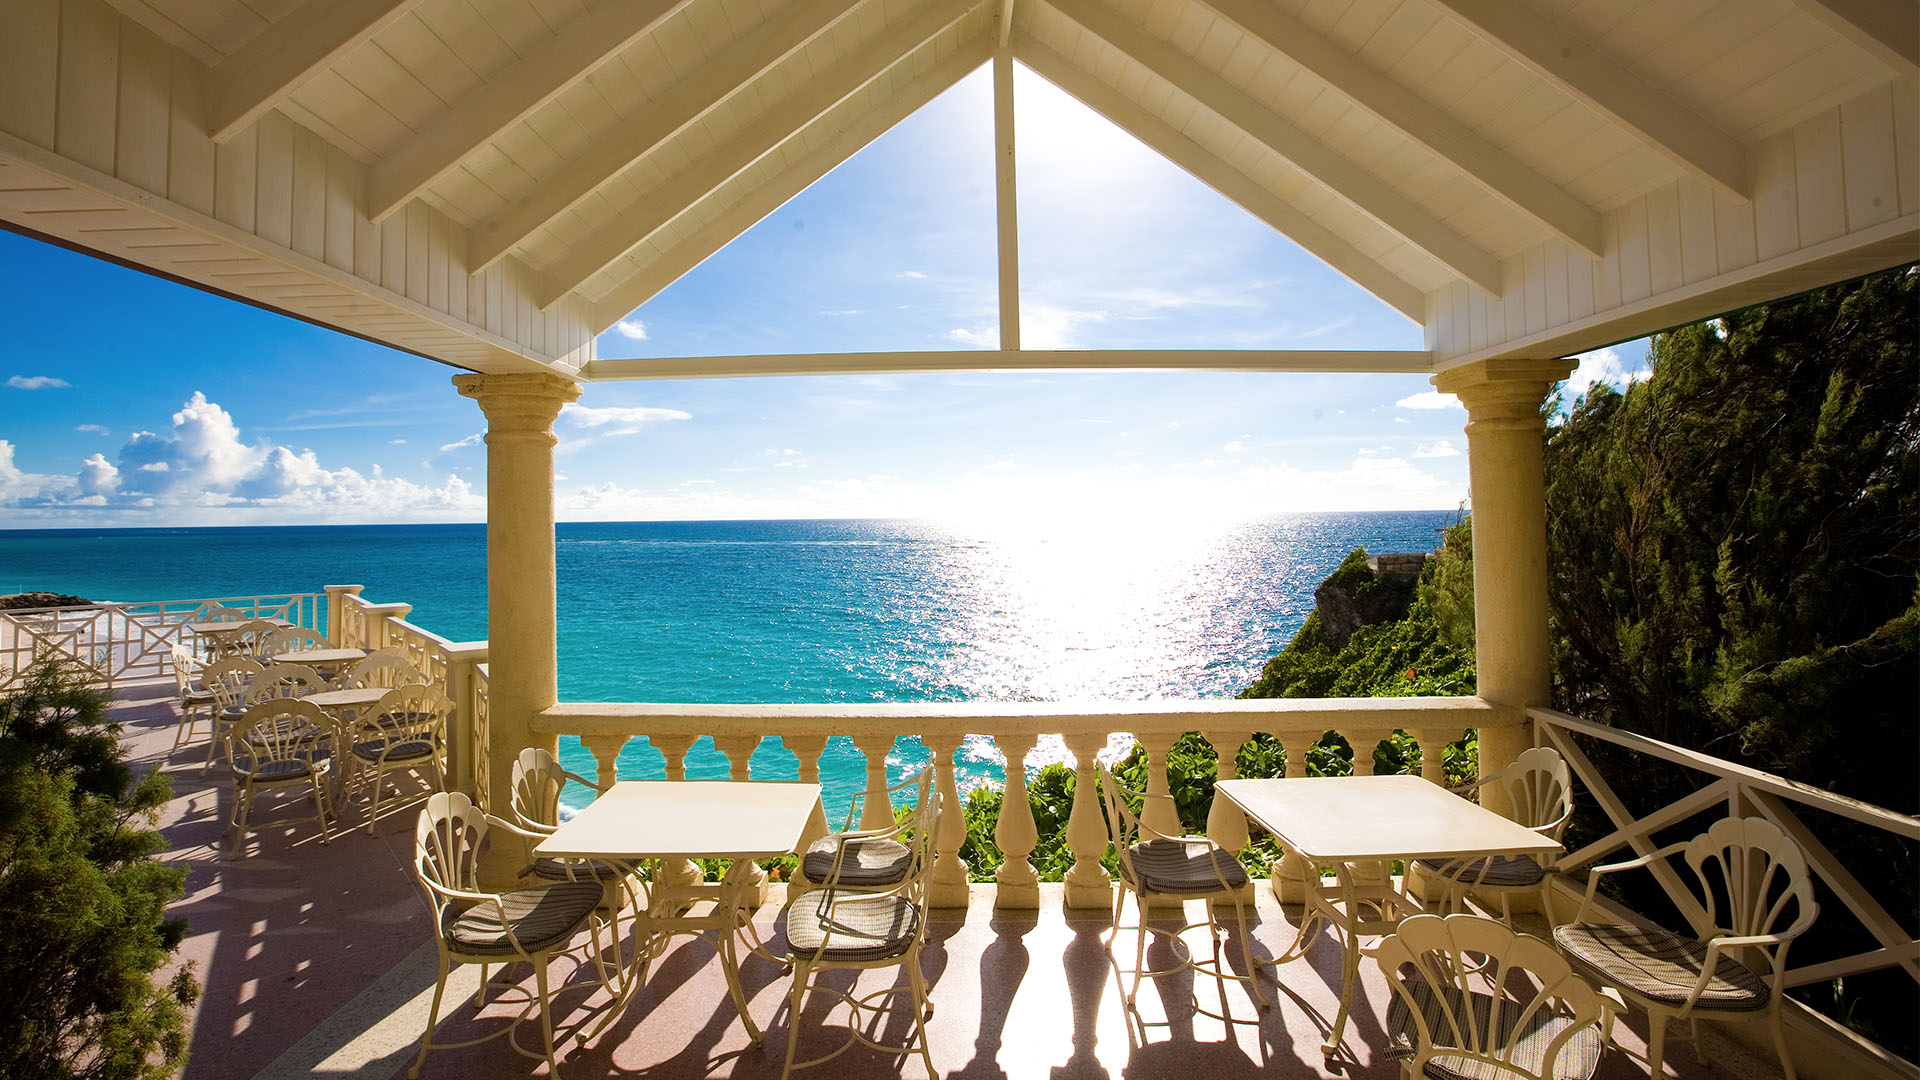 crane_0000_View-of-Crane-Beach-from-Pavilion-Room